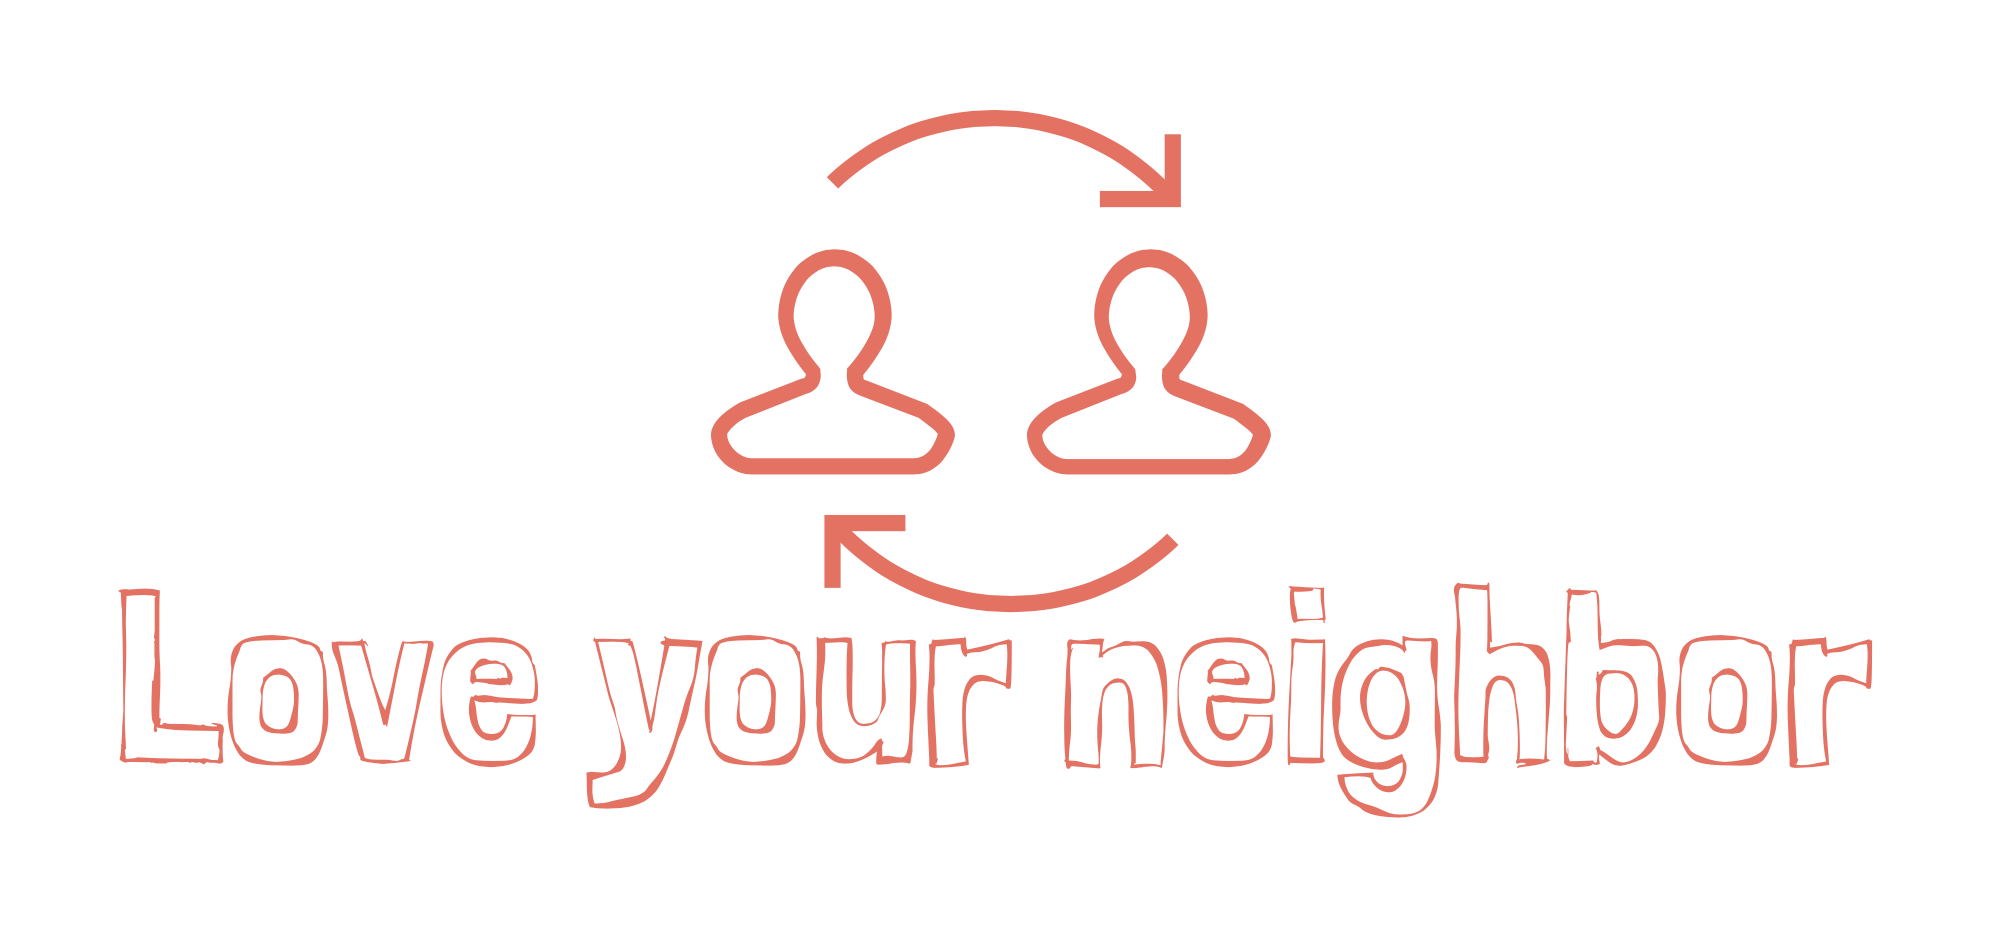 Love your neighbor-logo-2.png